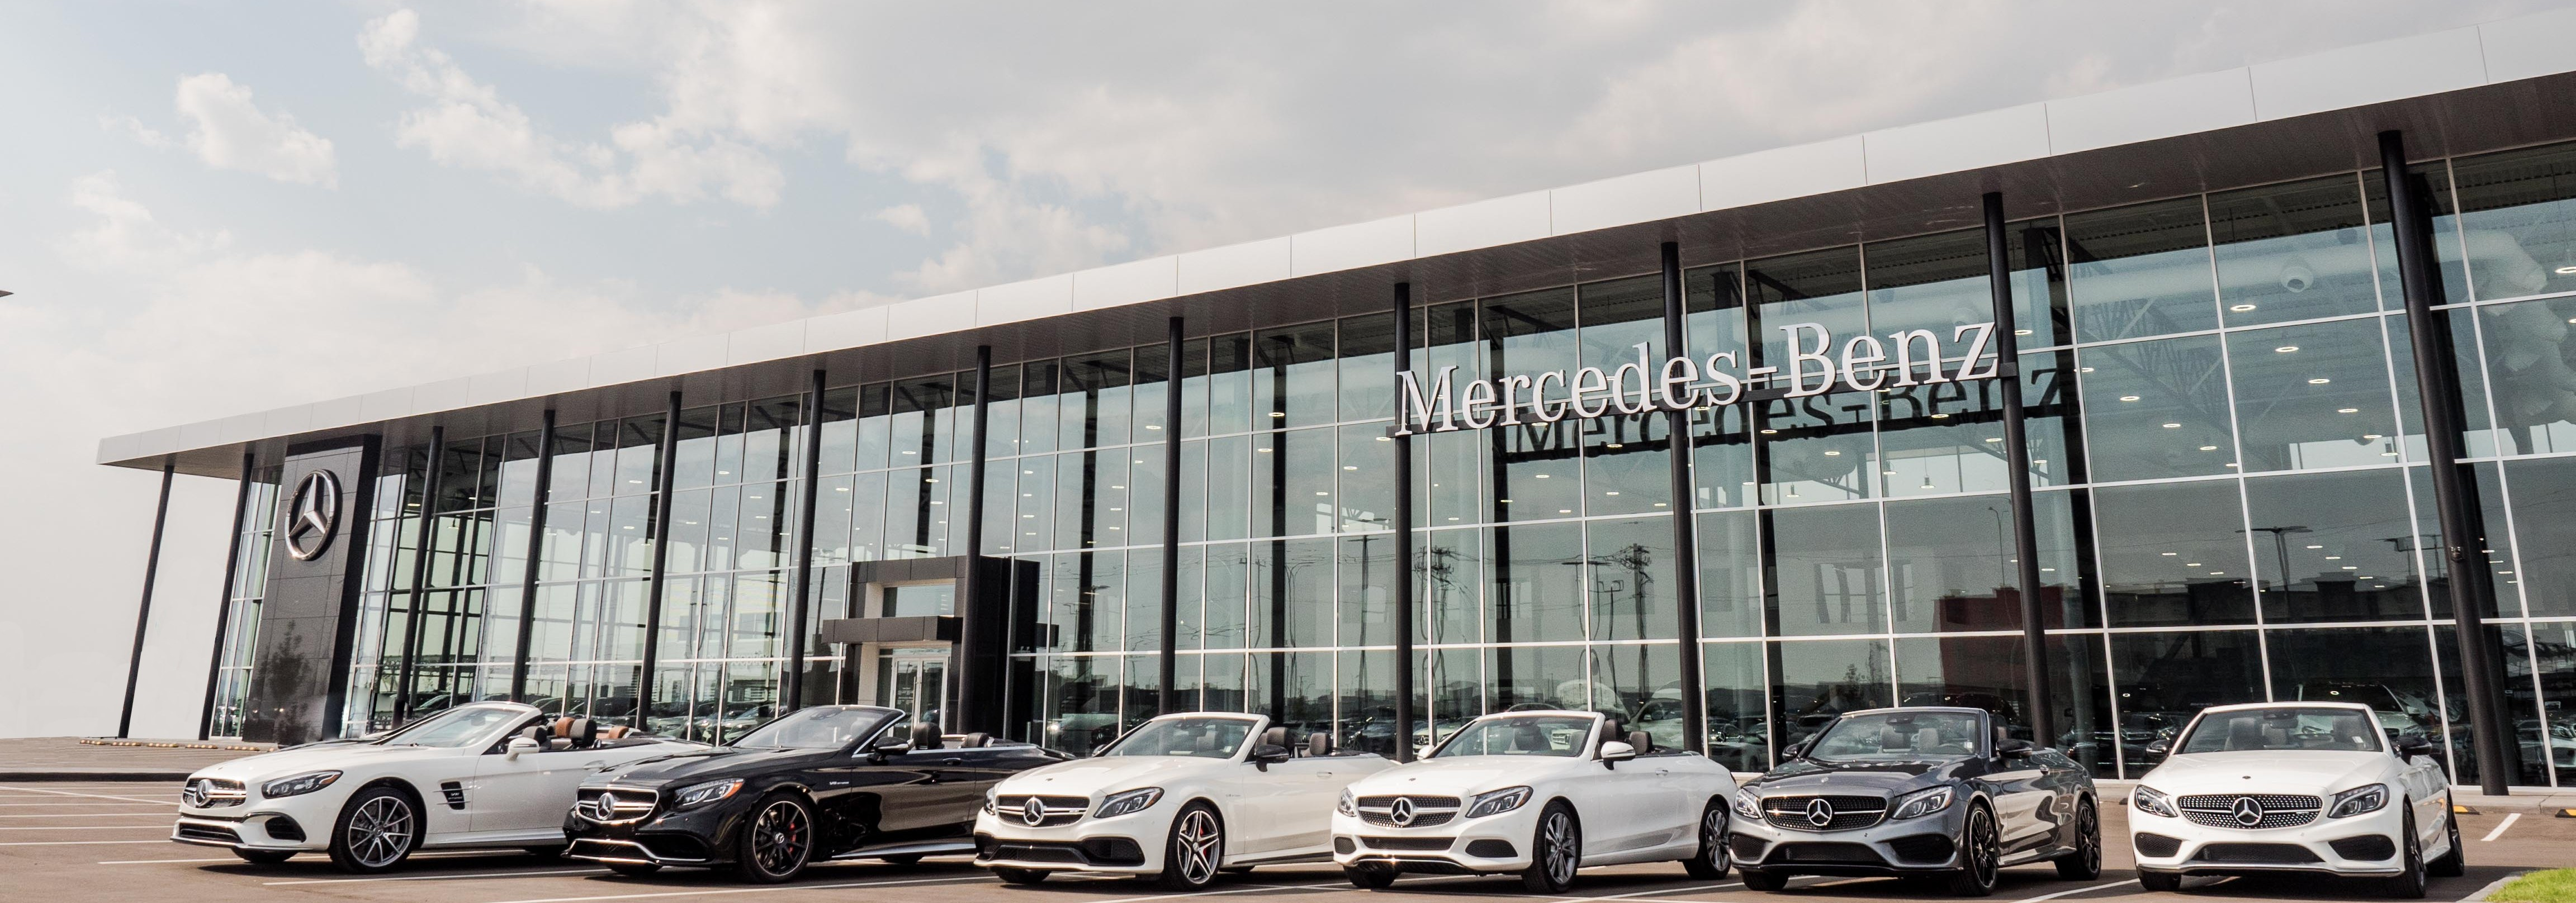 Used Mercedes Benz Specials In Calgary Mercedes Benz